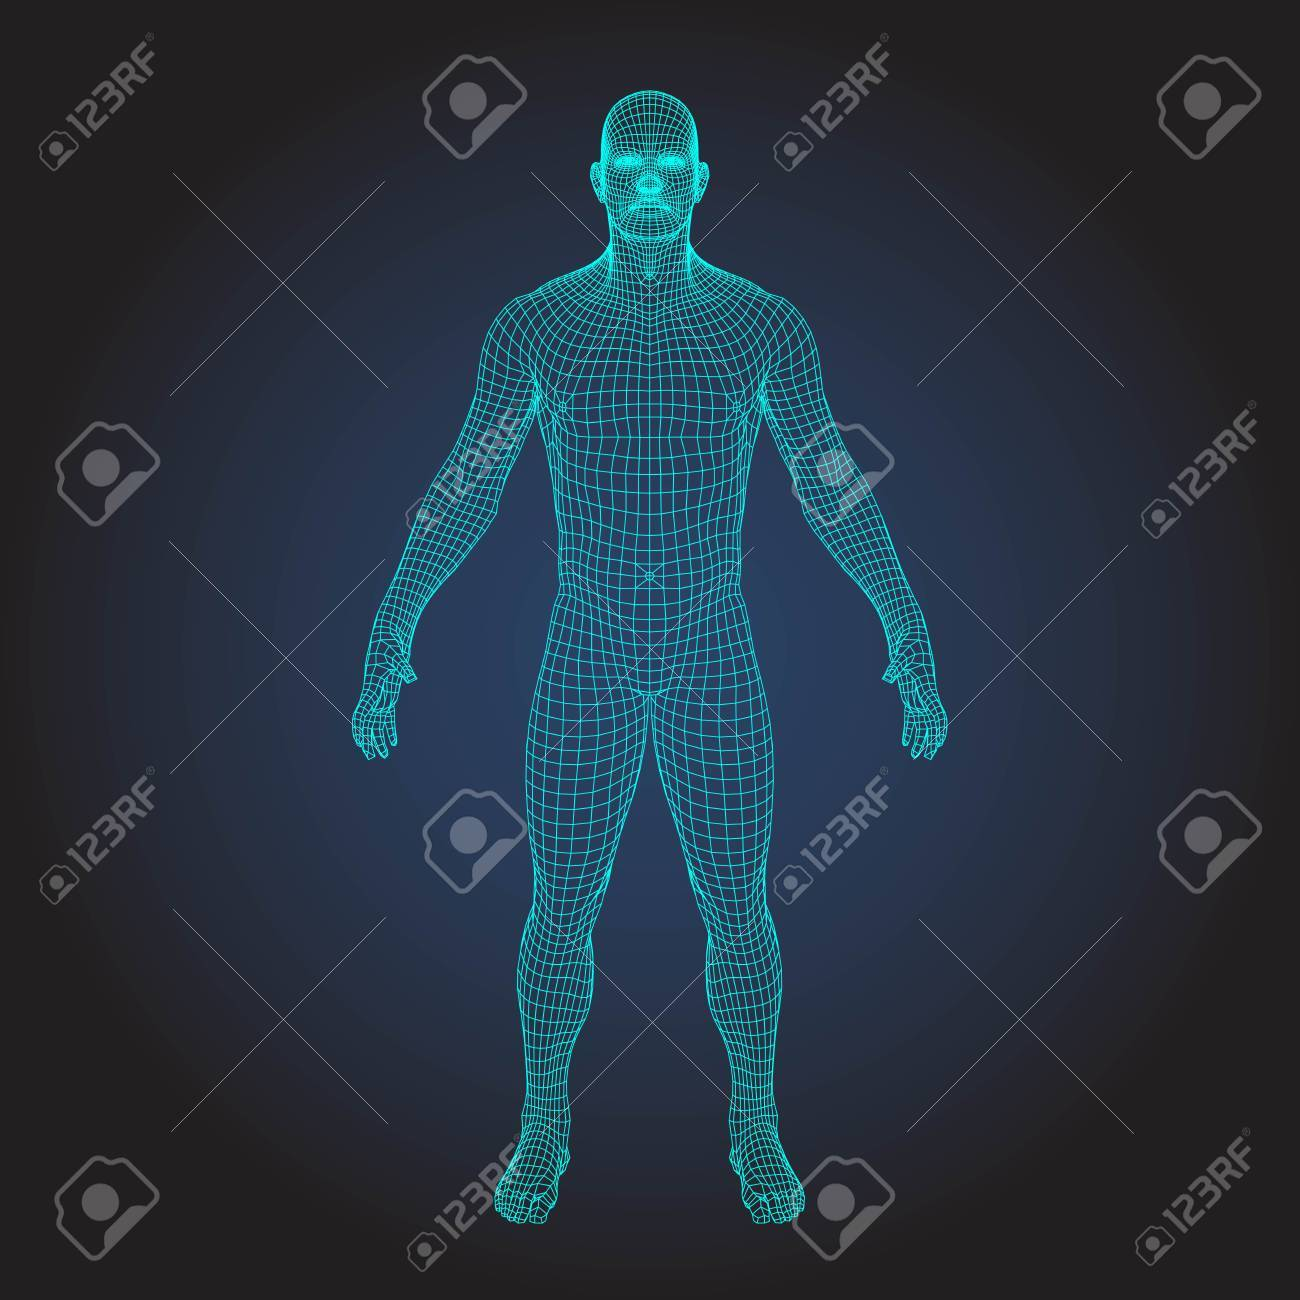 Wireframe Human Body In Virtual Reality Medical Blue Print Scanned